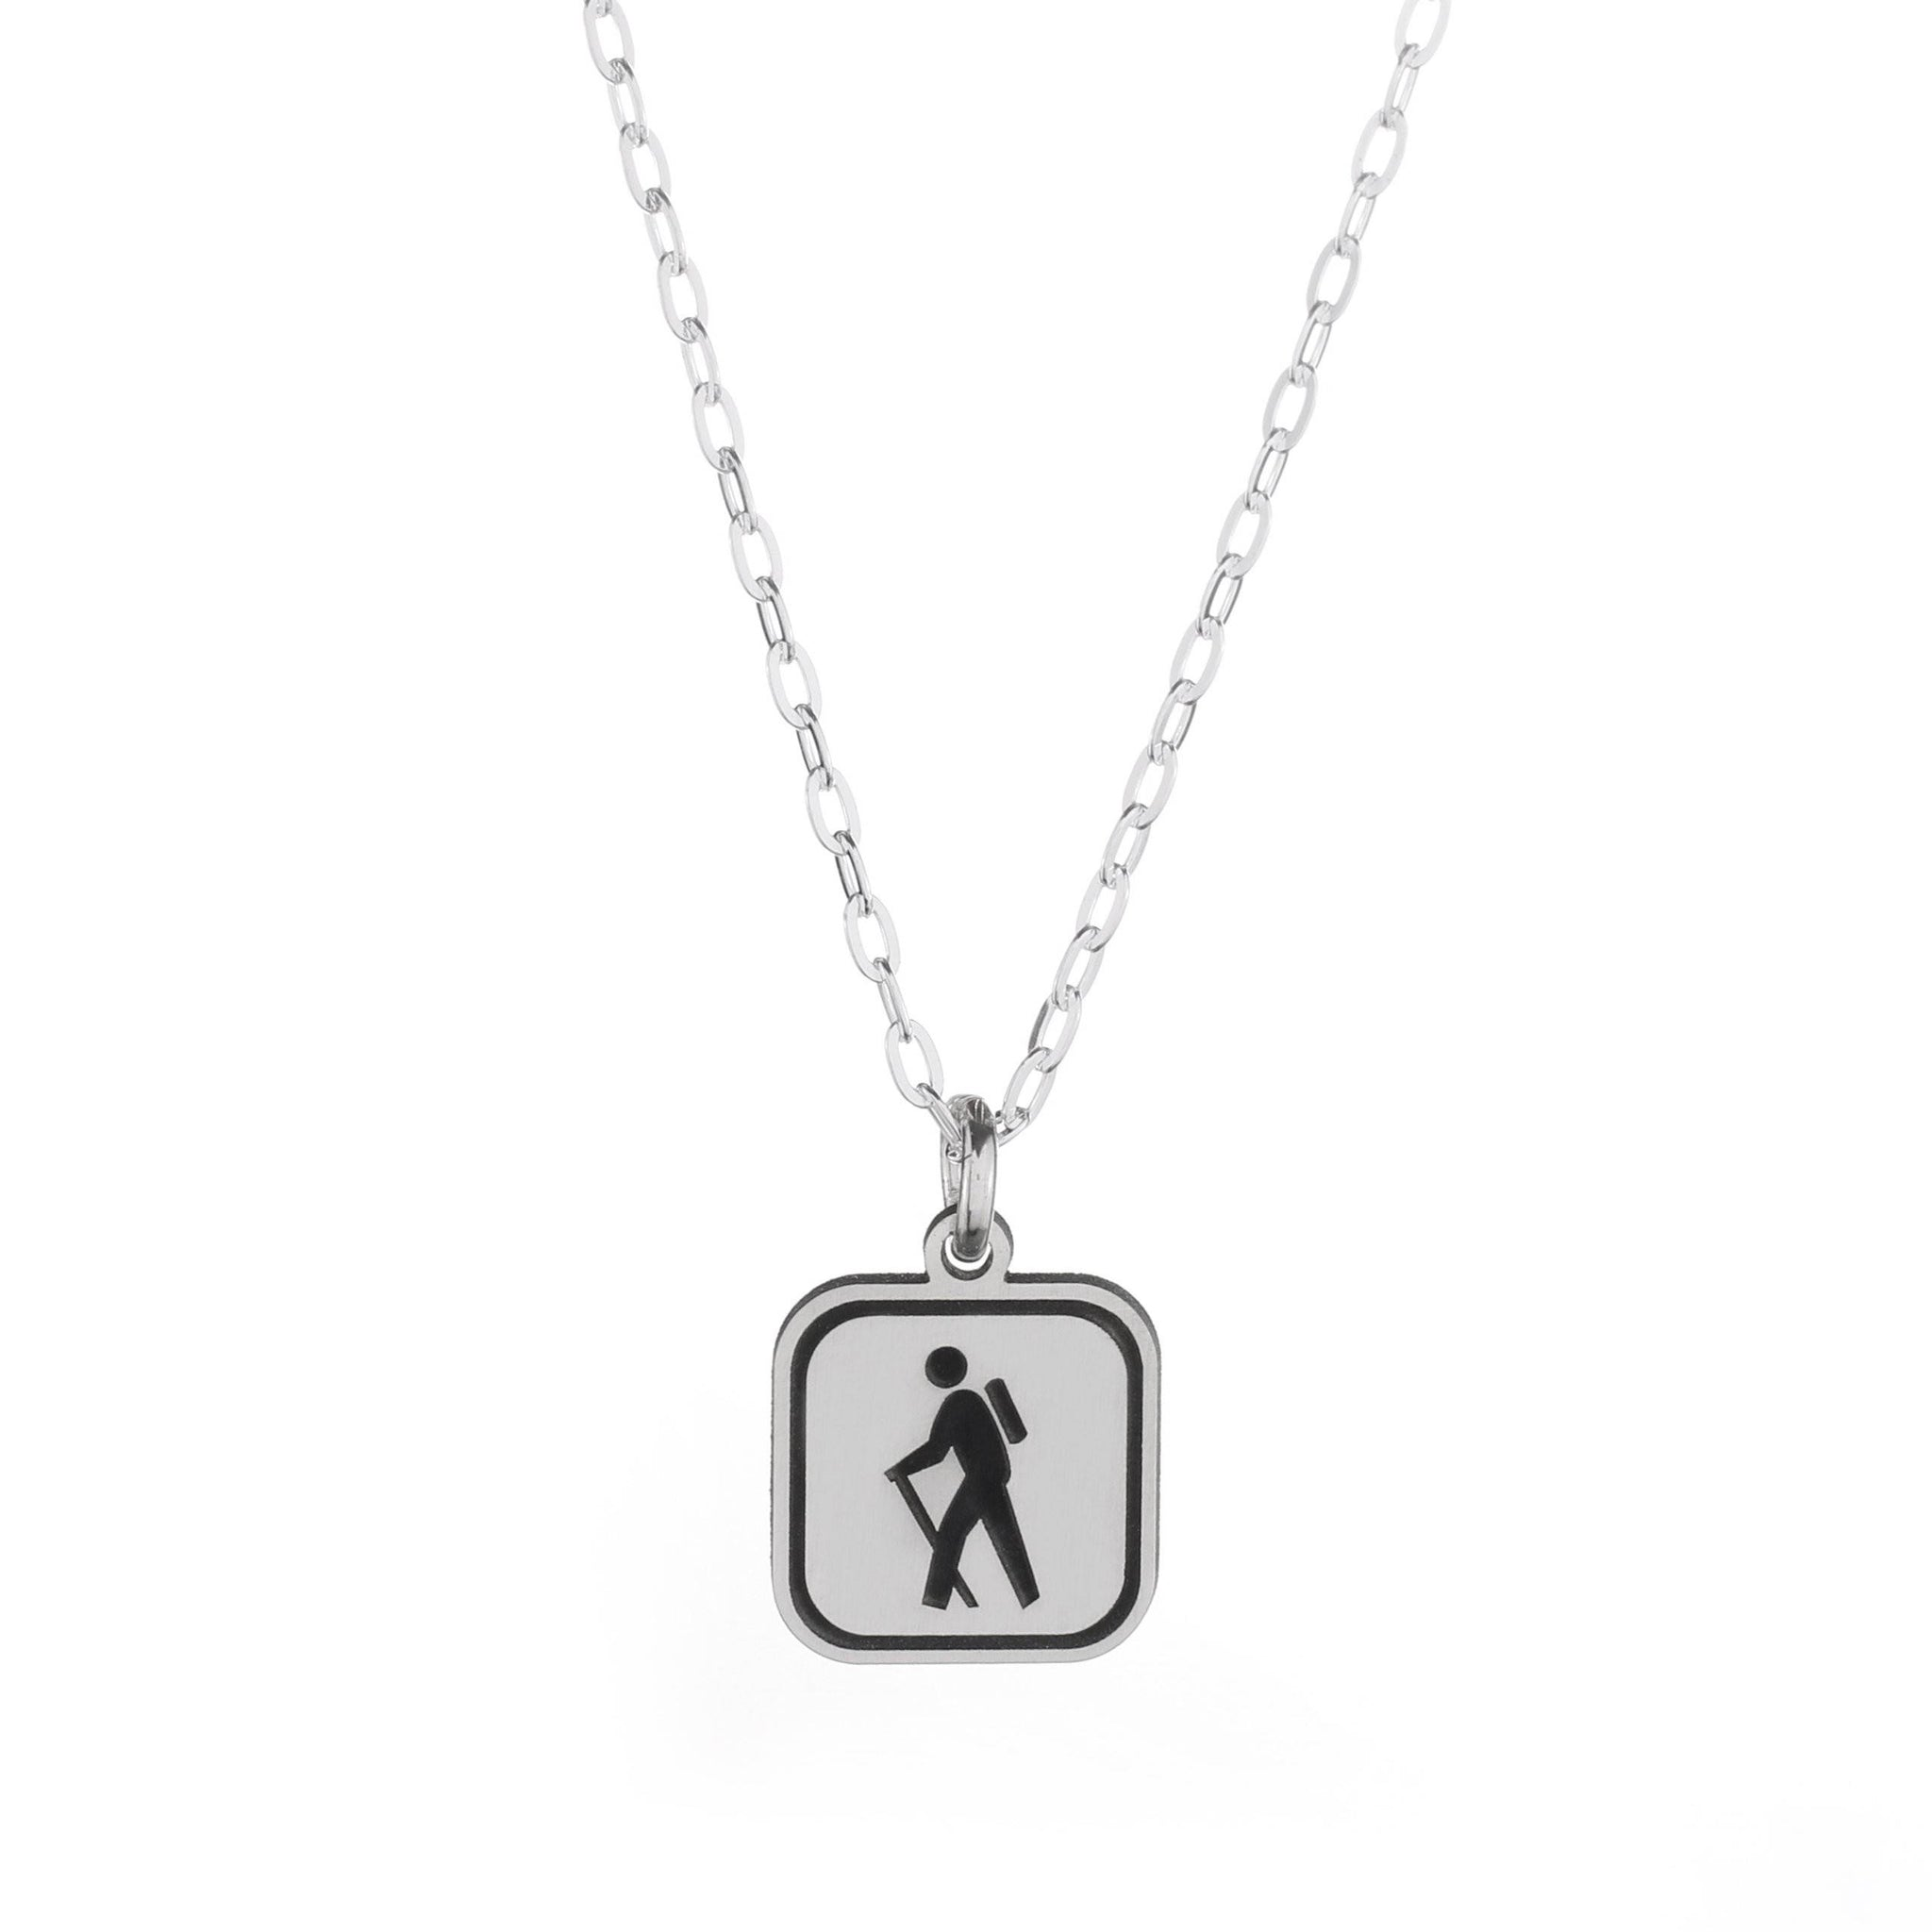 Hiking Mini Sign Necklace